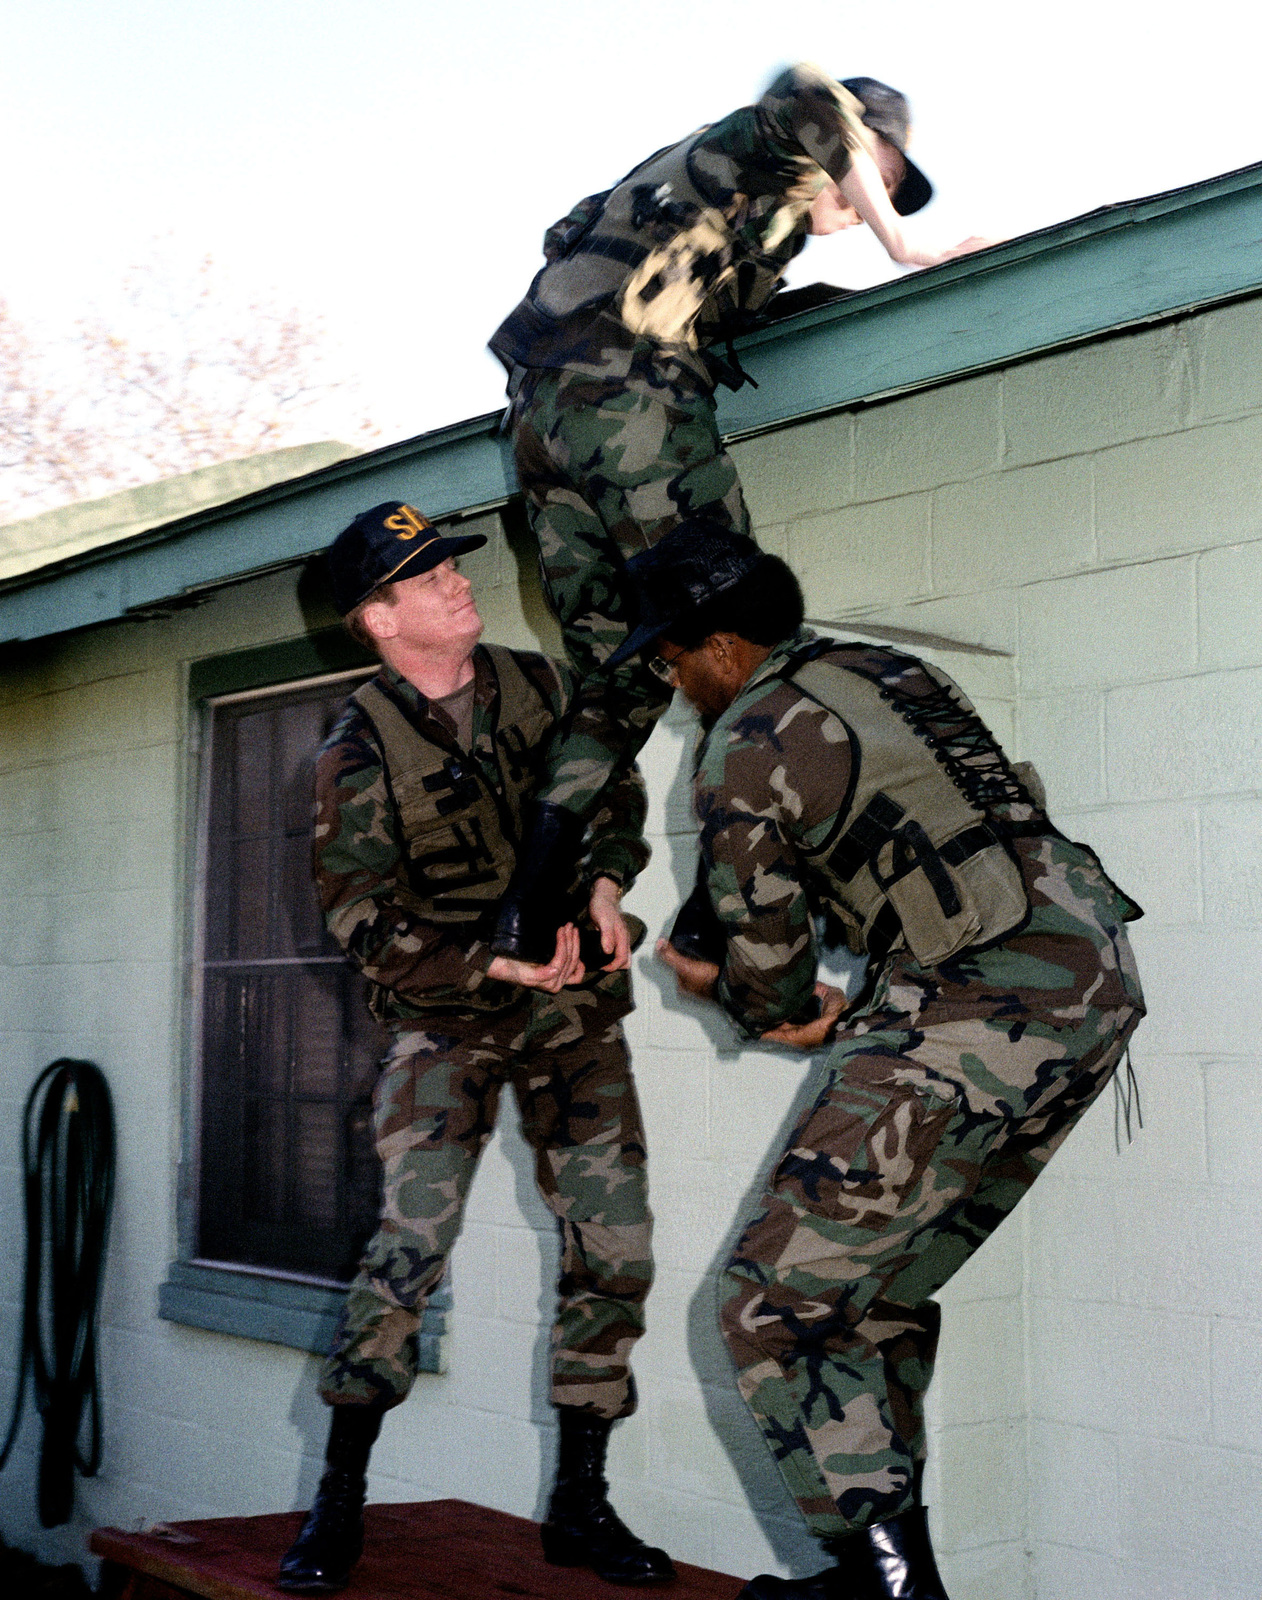 Private First Class Ernest J. Williams is boosted onto a roof by SPECIALIST, Fouth Class Howard Griffin and STAFF Sergeant James A. Jordan during a security exercise...The men are members of the Special Reaction Team (SRT)